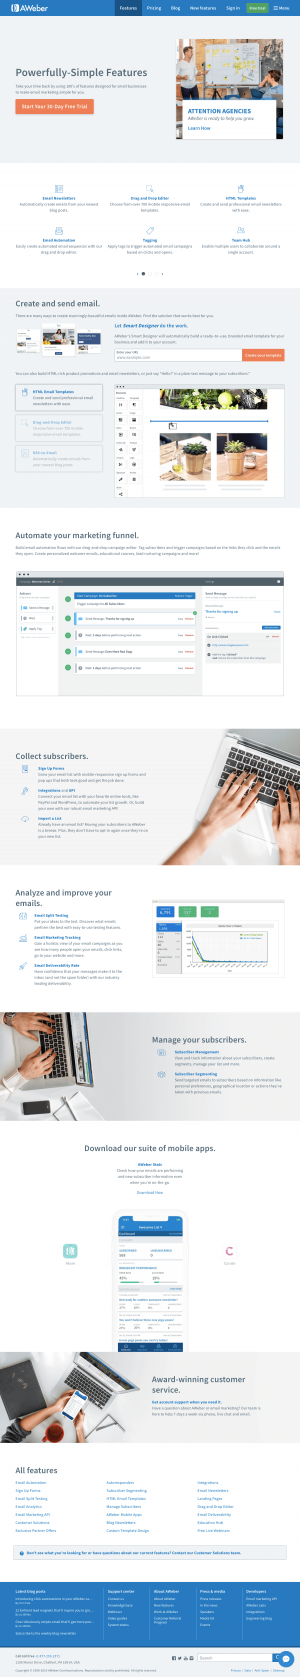 AWeber - Features page